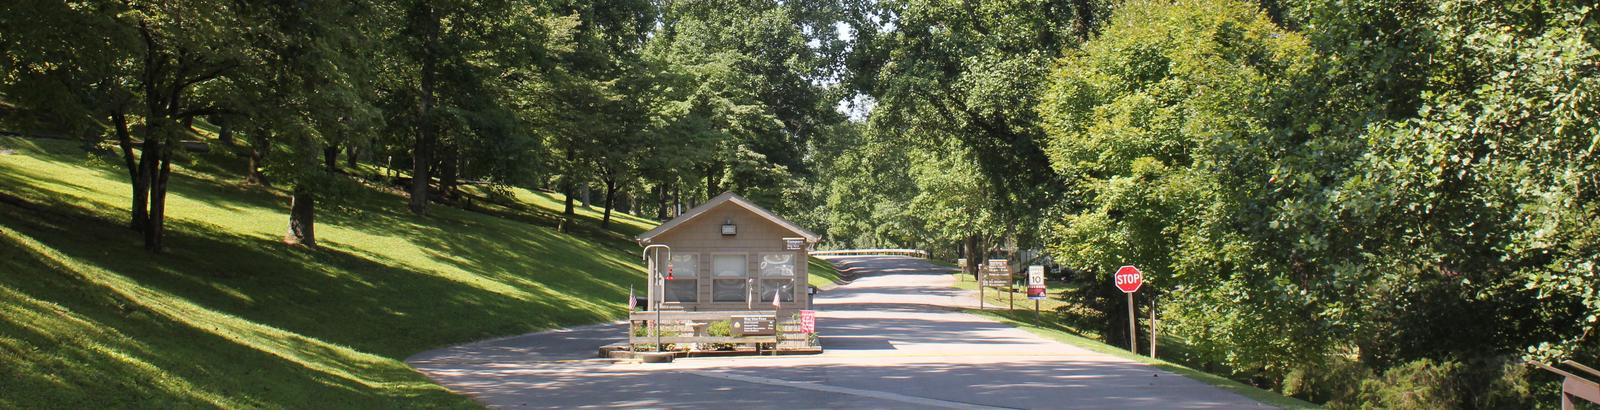 Ragland Bottom Campground Entrance